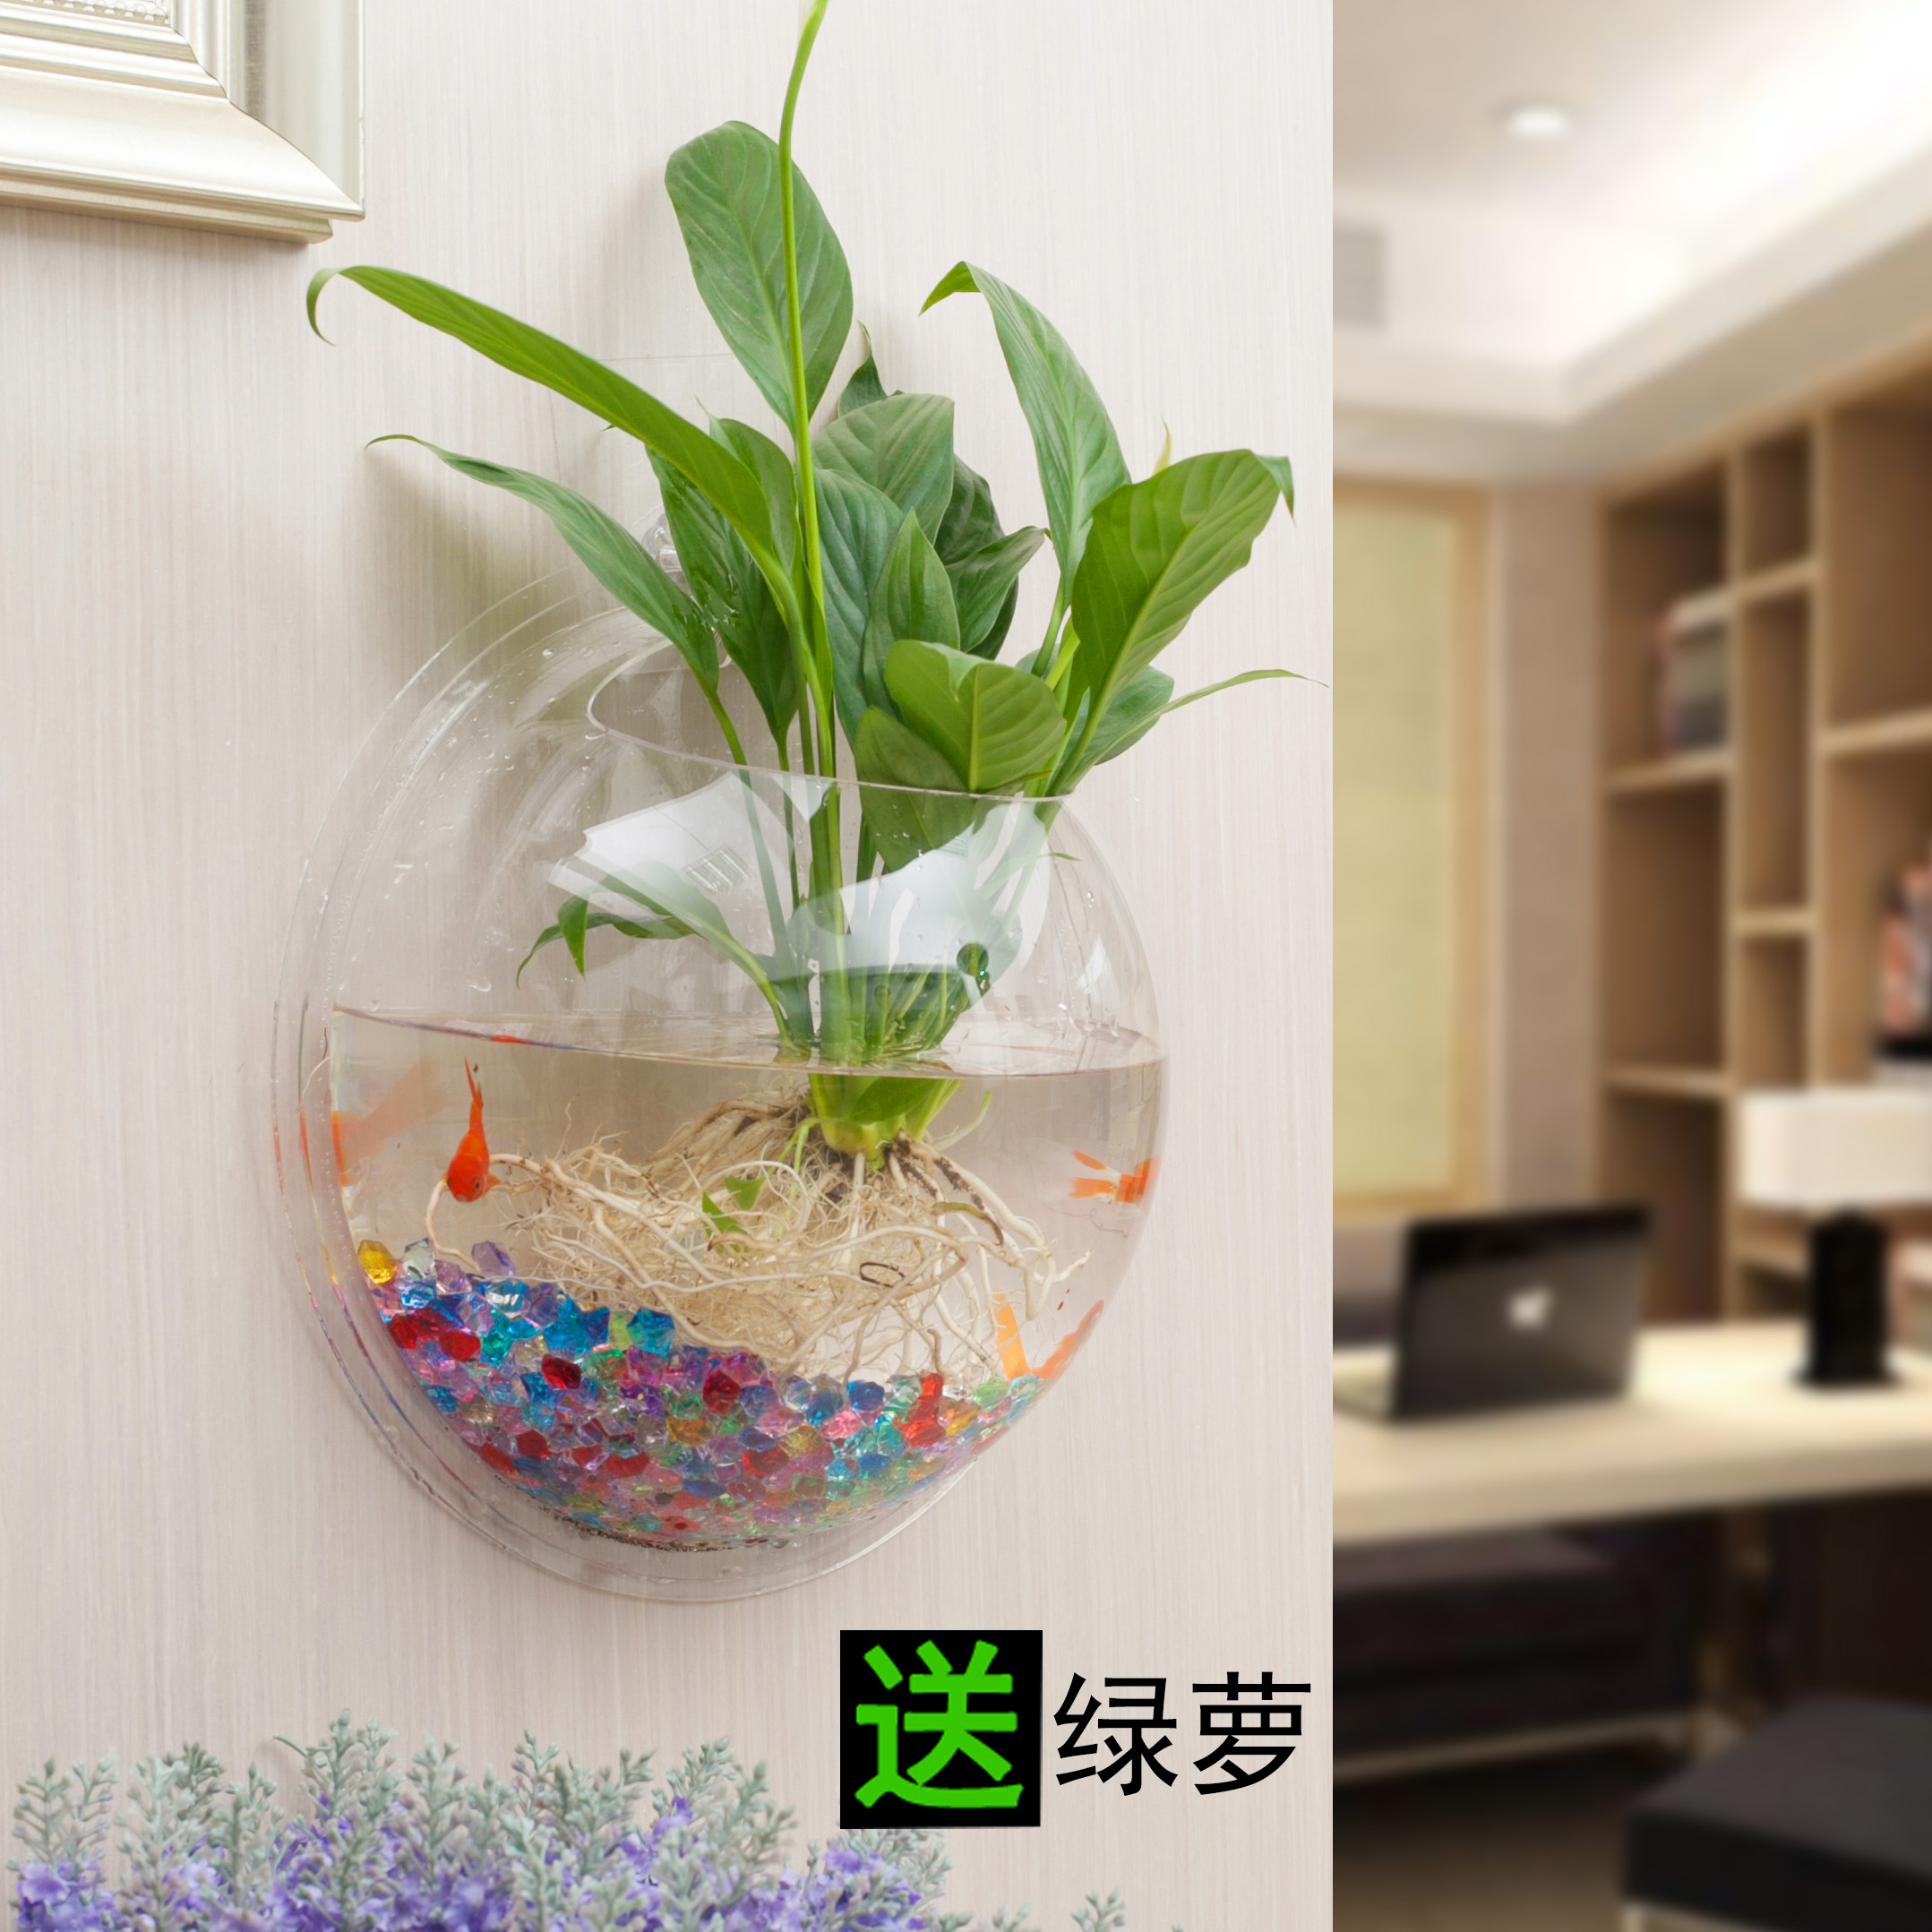 Wall Mounted Flower Pot Creative Green Plant Radish Potted Multi Fleshy